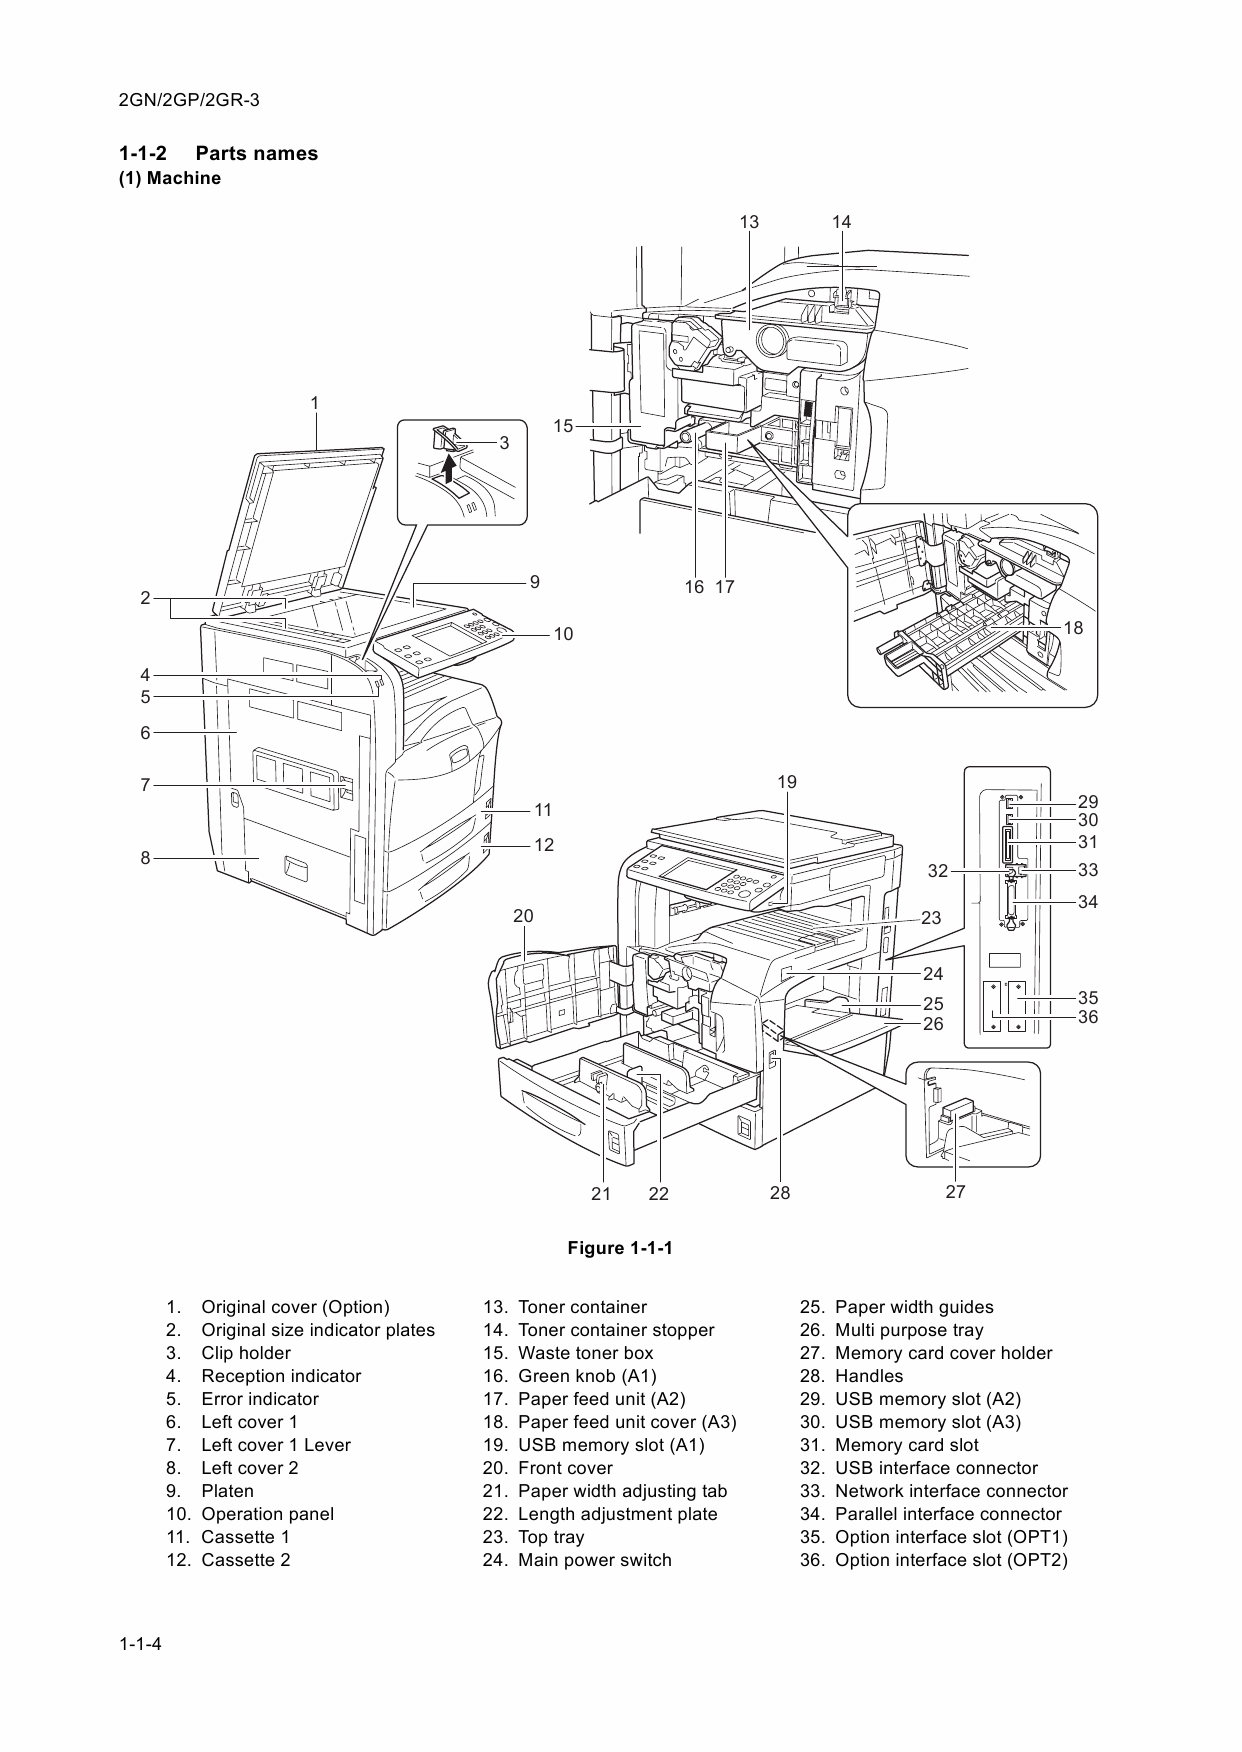 KYOCERA Copier KM-3050 4050 5050 Service Manual-2